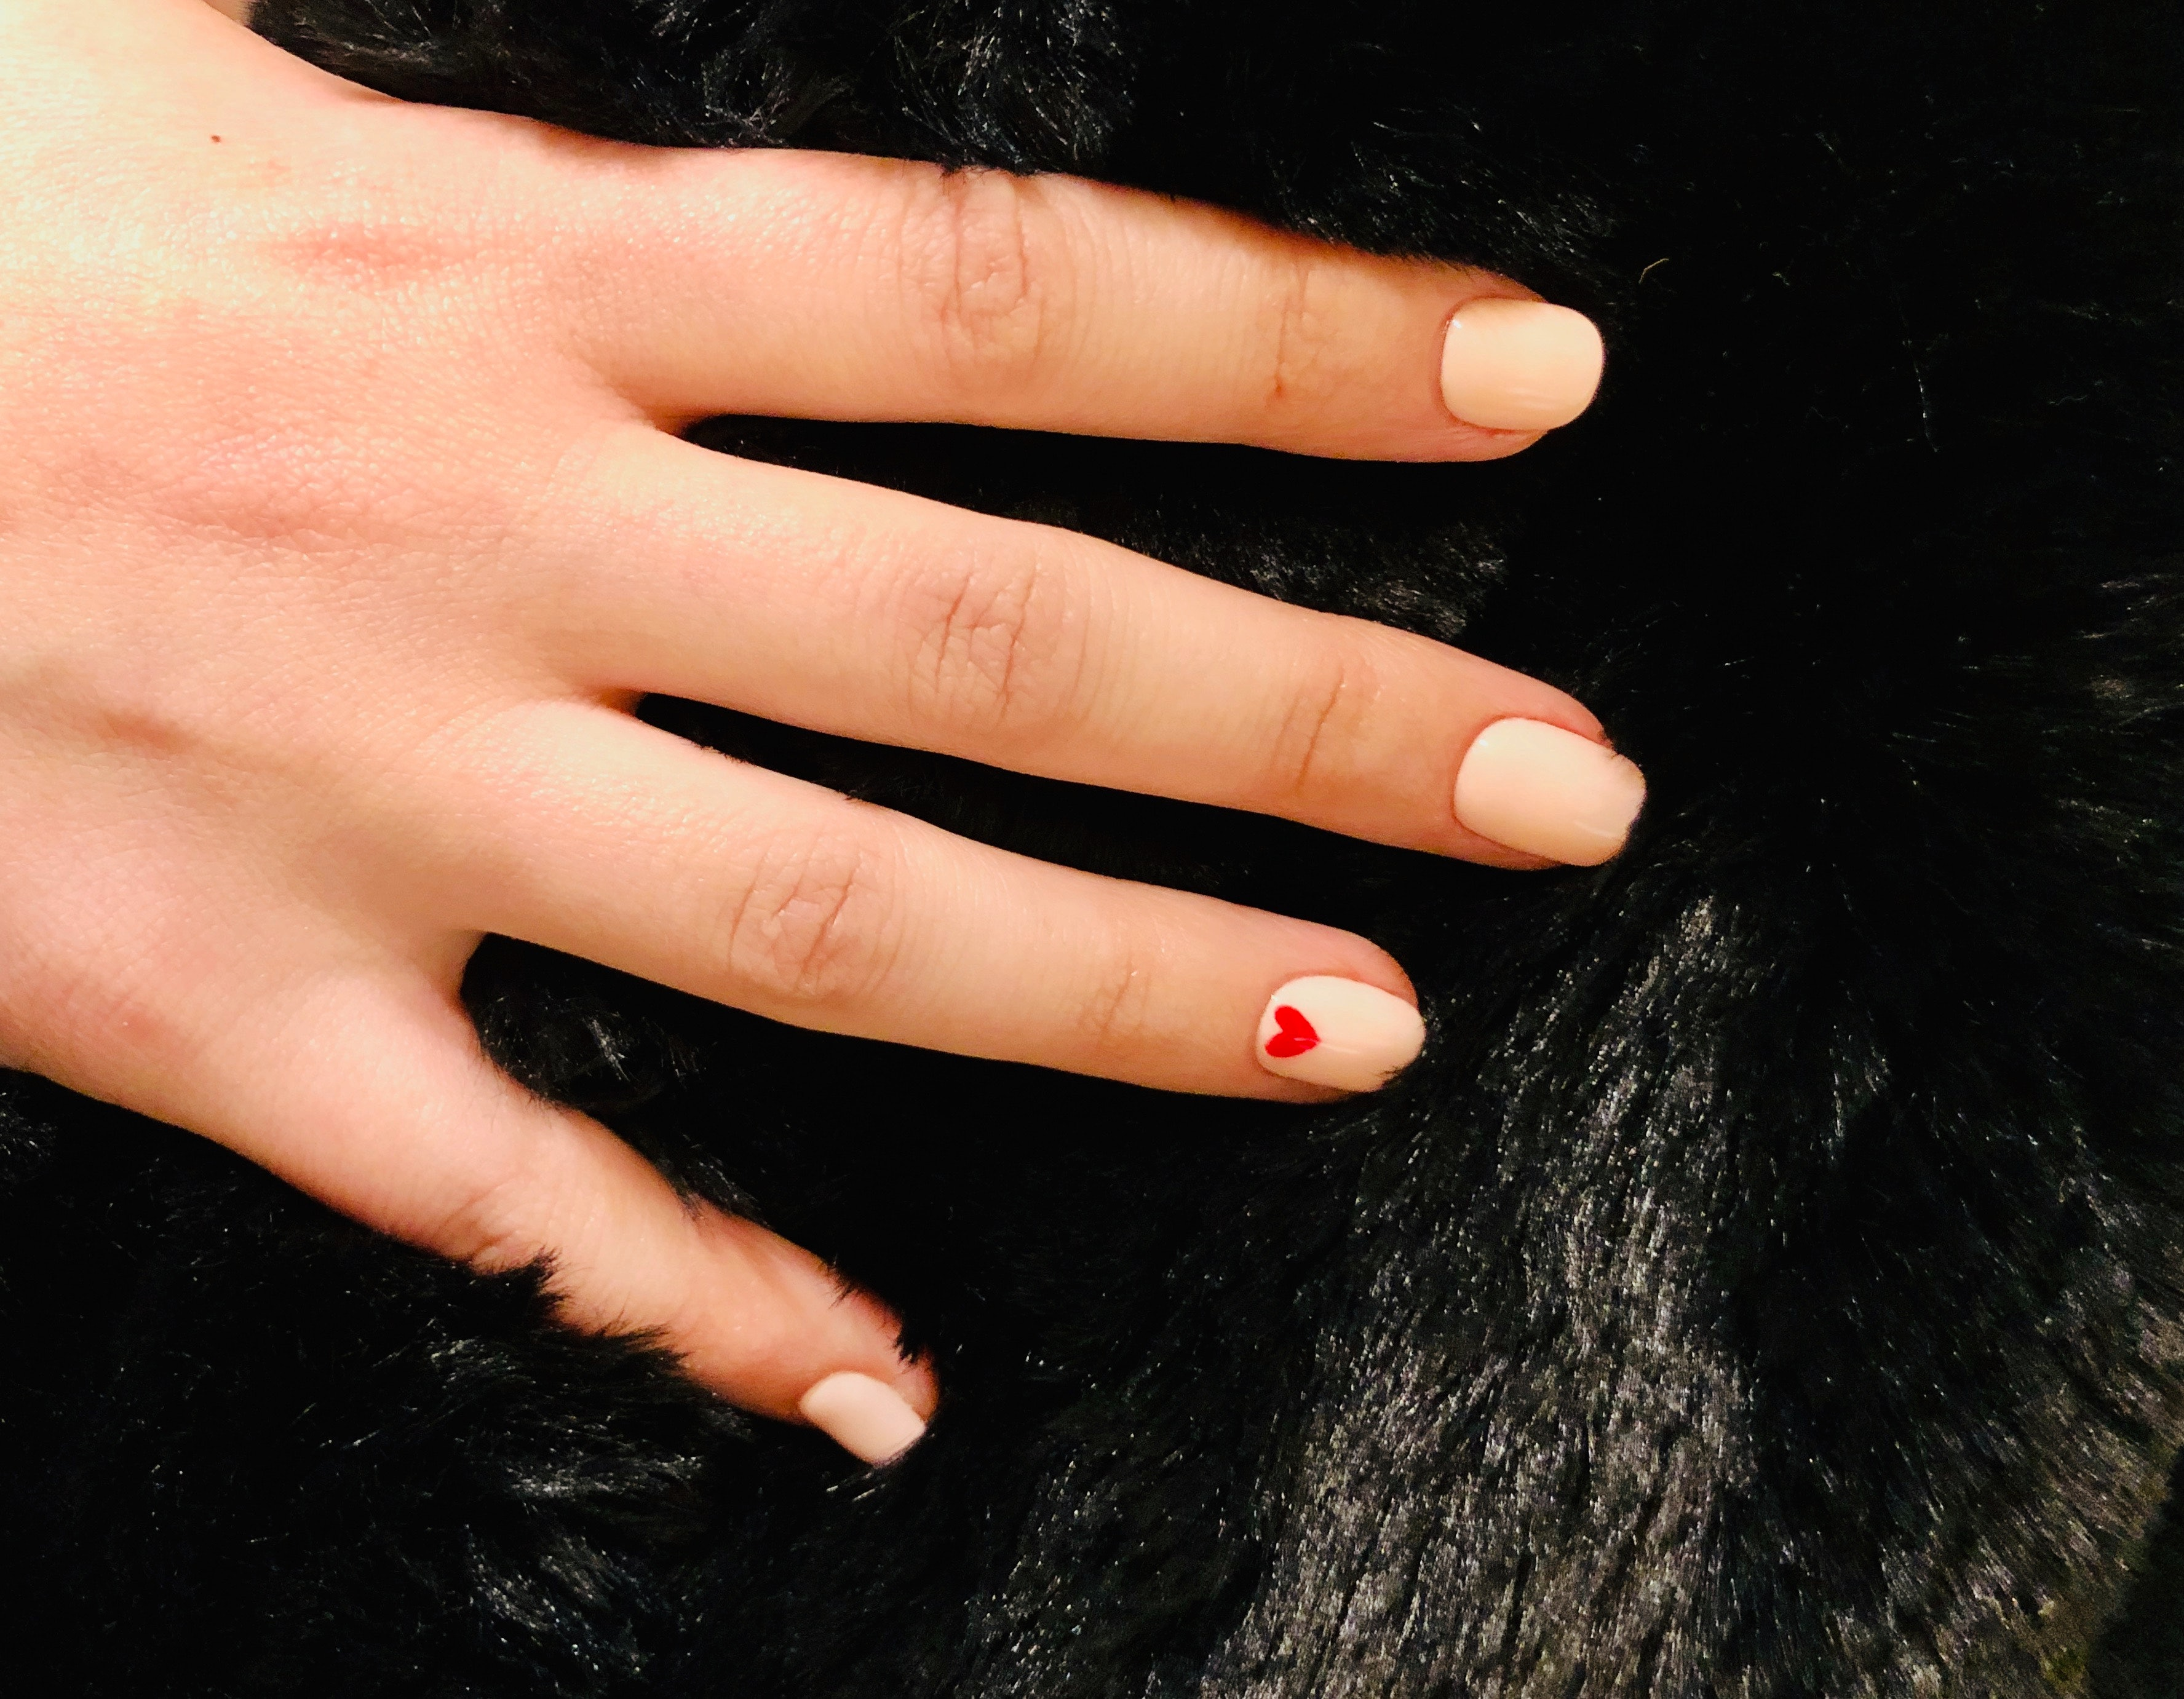 14 February 2020 Nail Designs For Singles Lovers Everyone Else